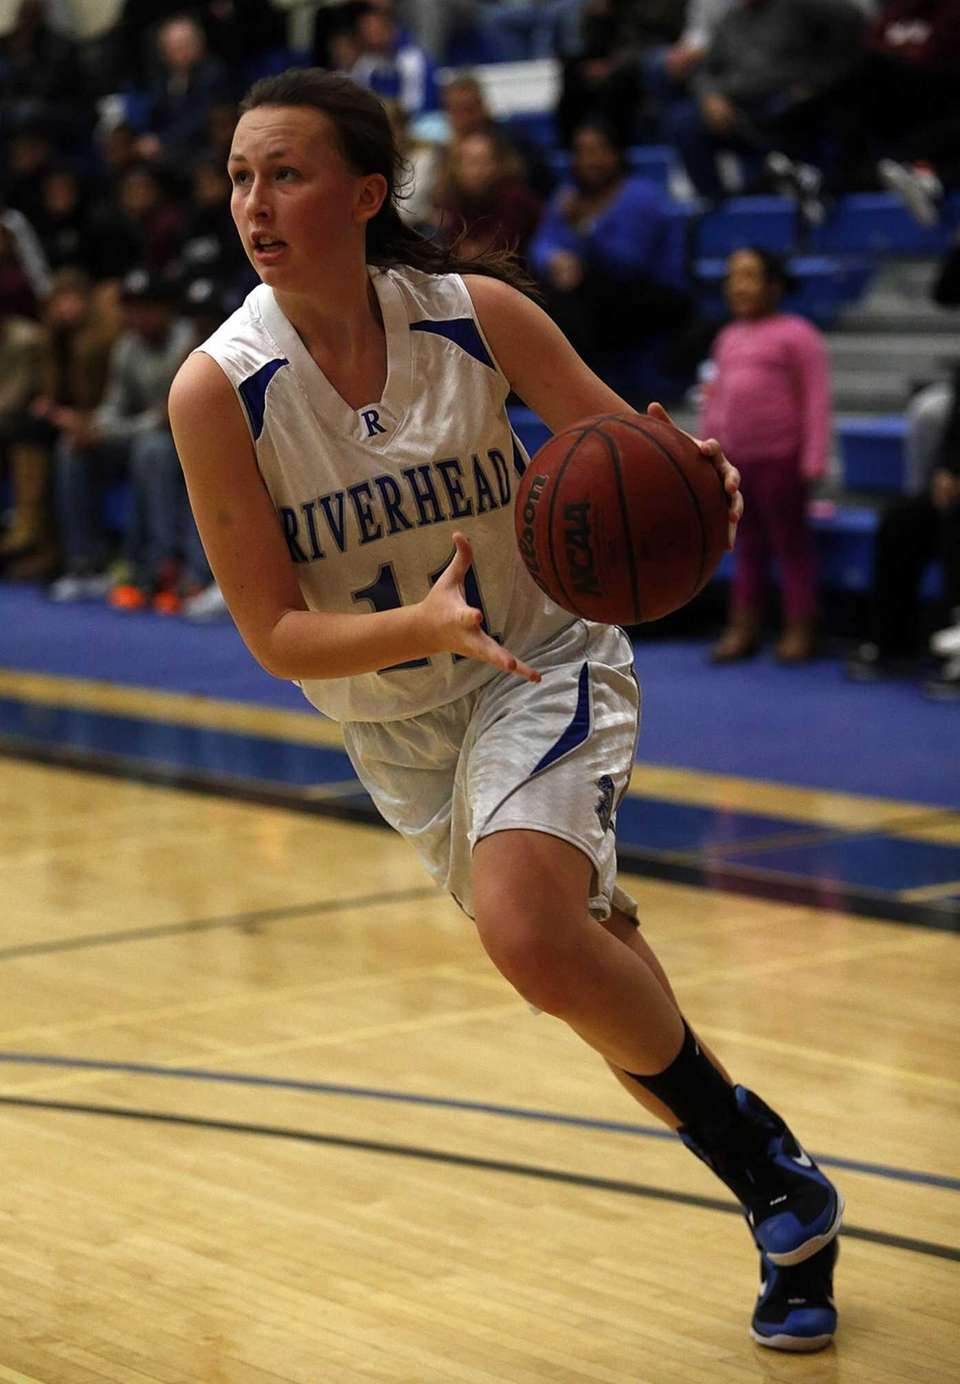 Riverhead's Jocelin Zaneski drives the baseline in the